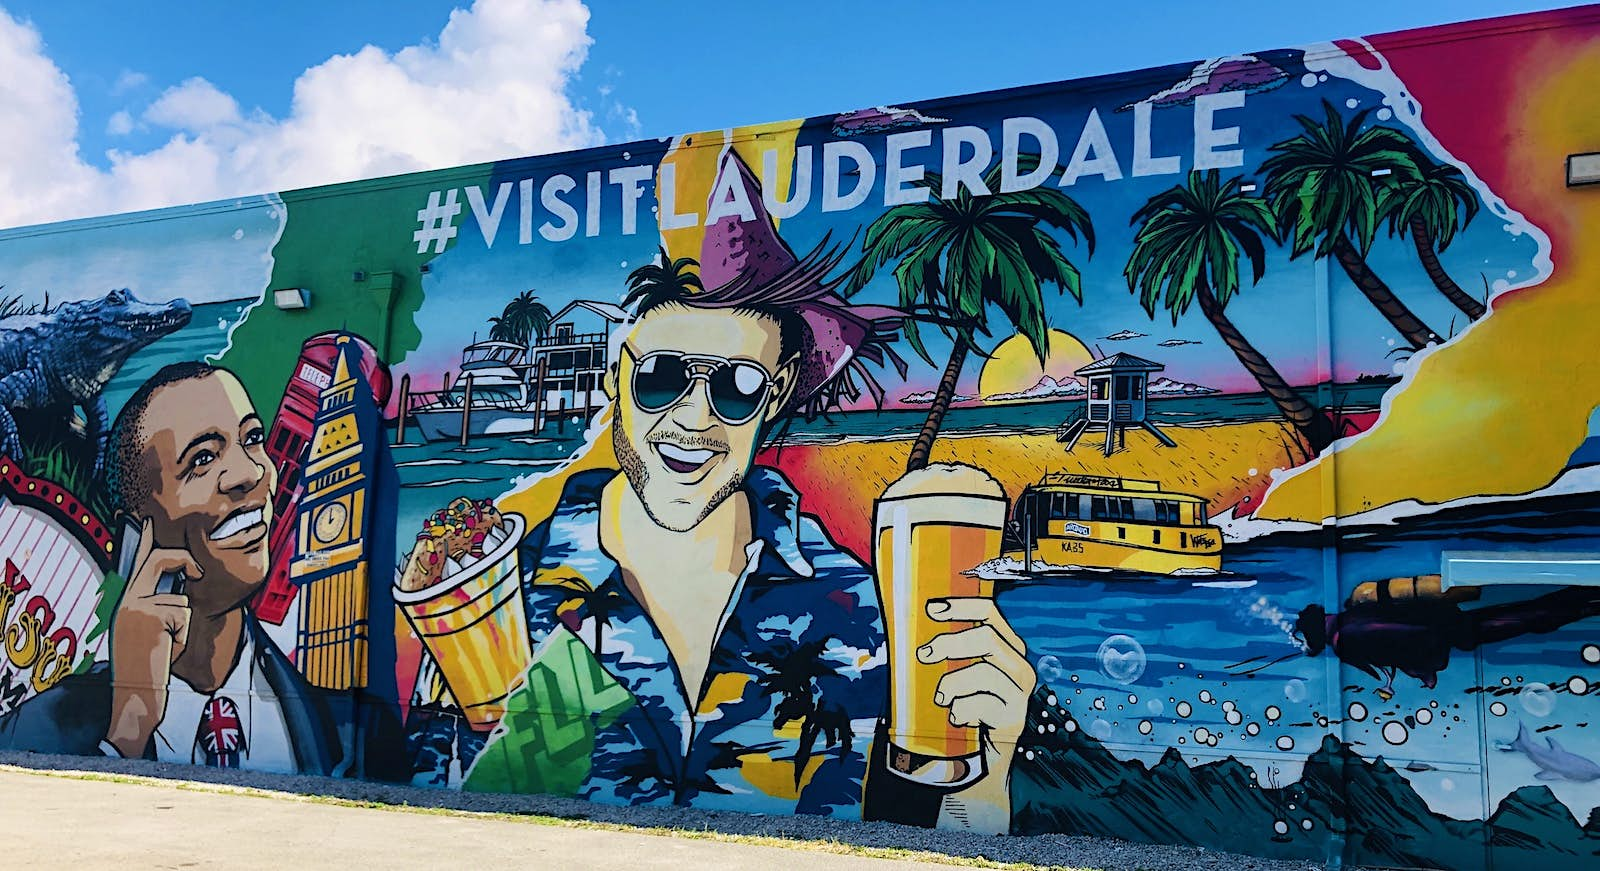 A colorful mural adorns a large wall. It depicts a man with a British flag tie with Big Ben next to him on the left and a man in a Hawaiian shirt and holding a beer is in the centre of the image. Various other images of Fort Lauderdale are included.